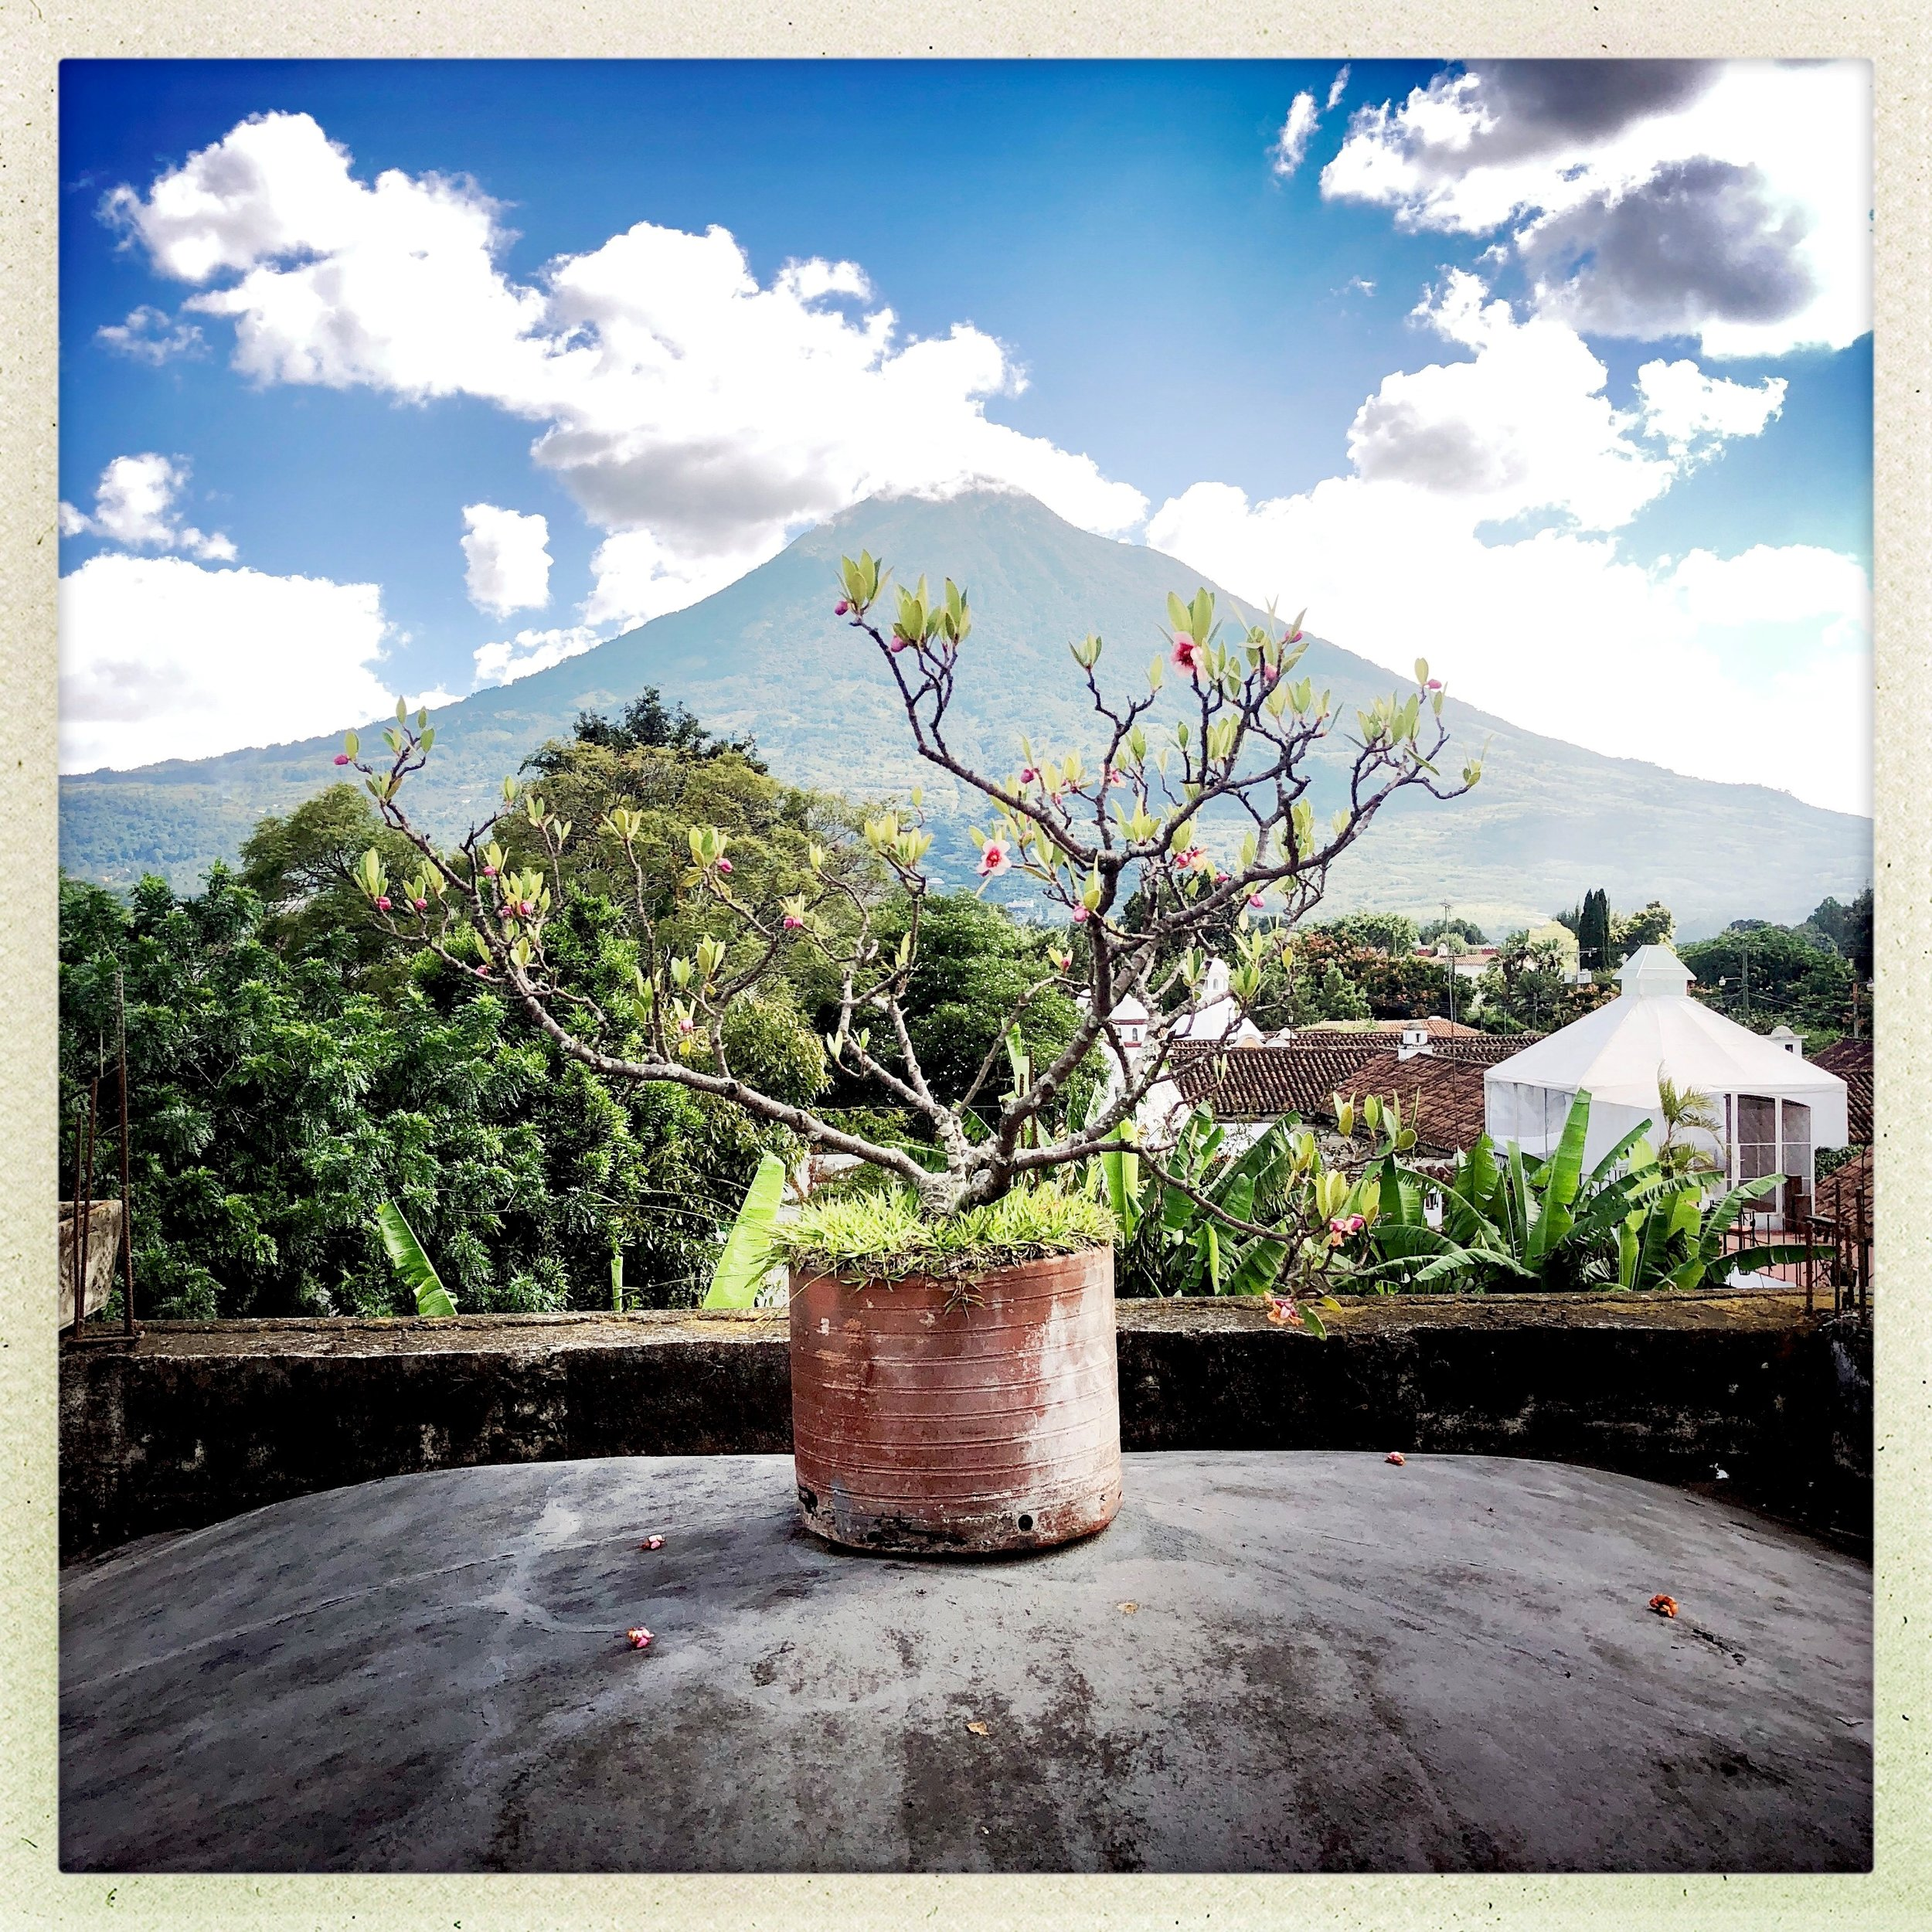 TRAVEL GUIDE - ANTIGUA, GUATEMALA